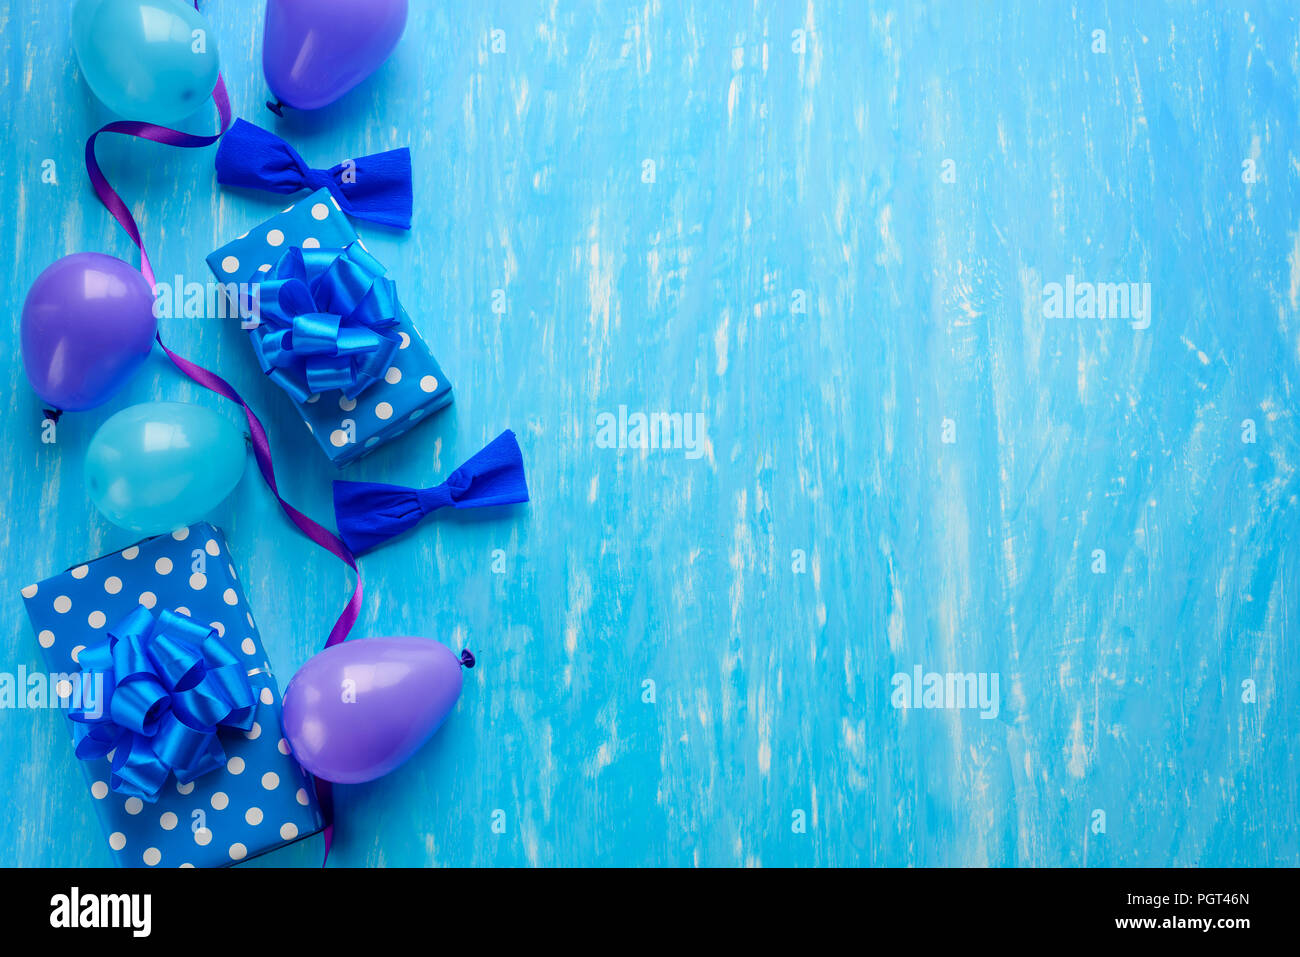 Party Invitation Card Template Stock Photo 216889085 Alamy